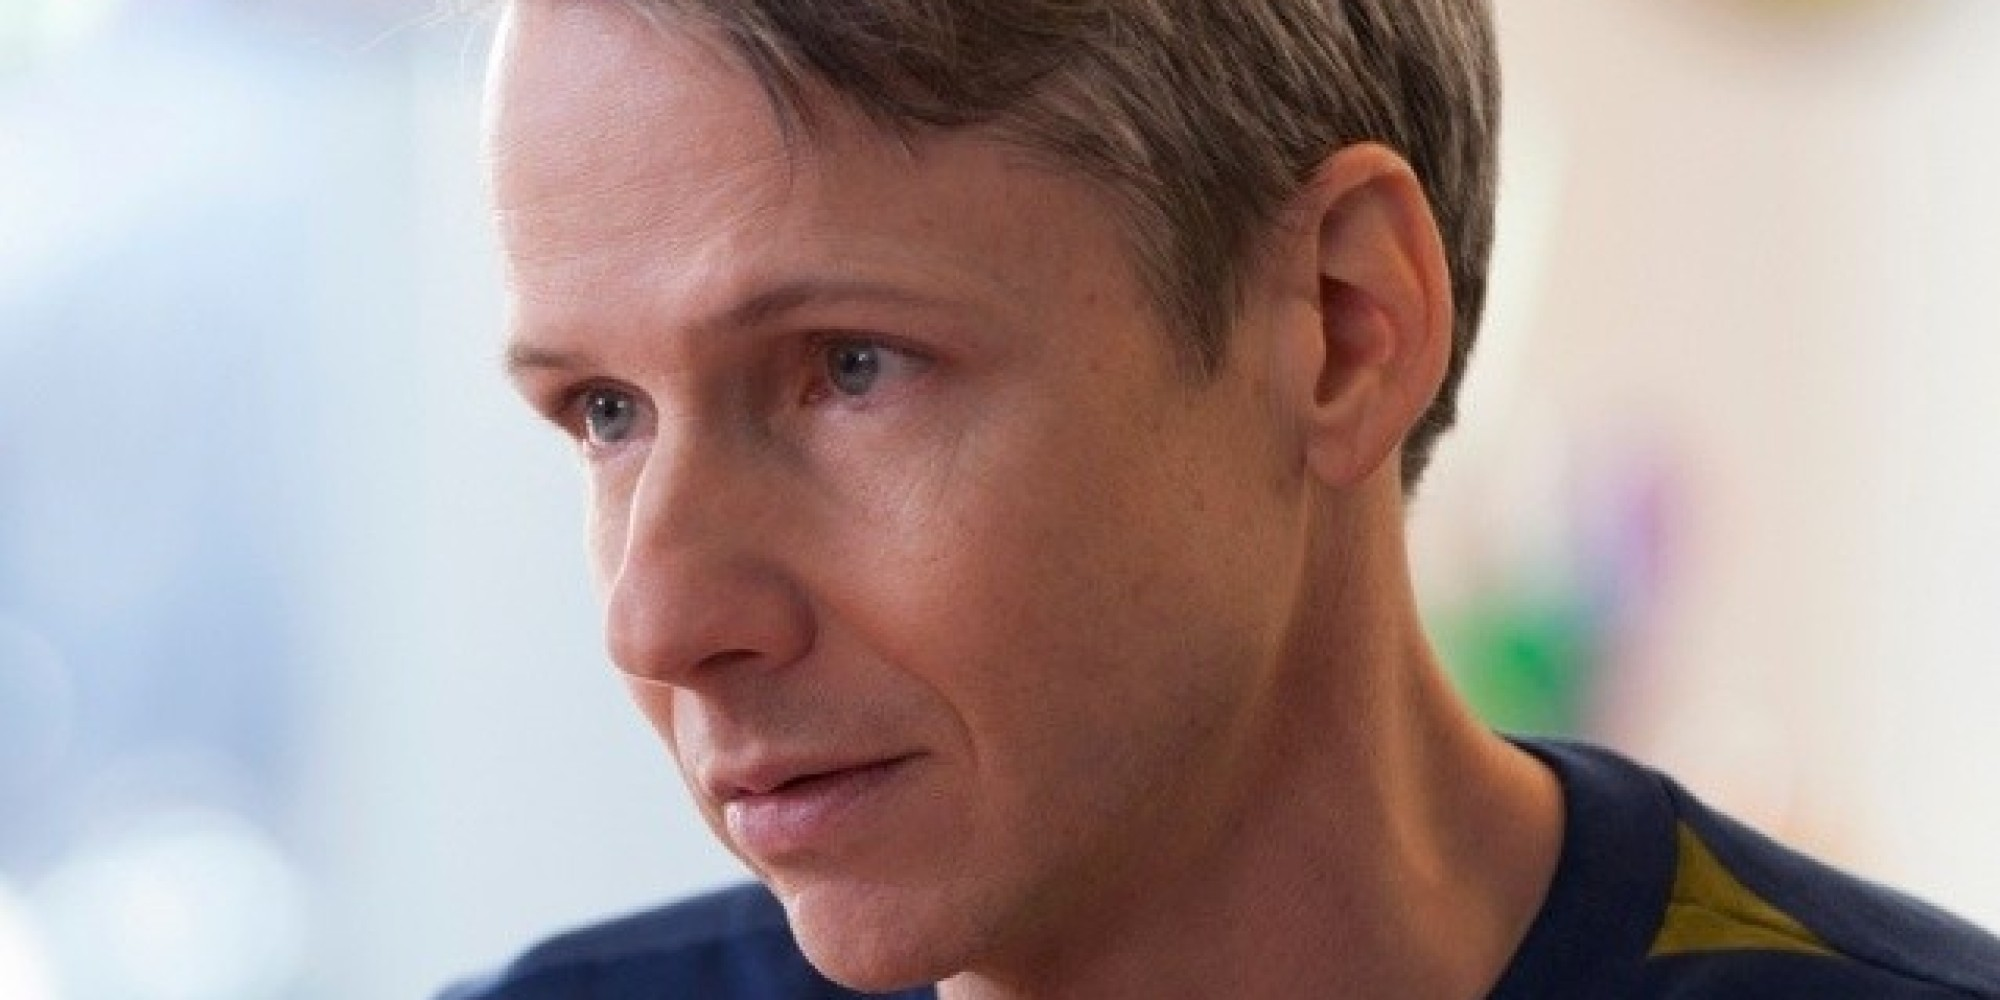 John cameron mitchell blames grindr for david s death in girls